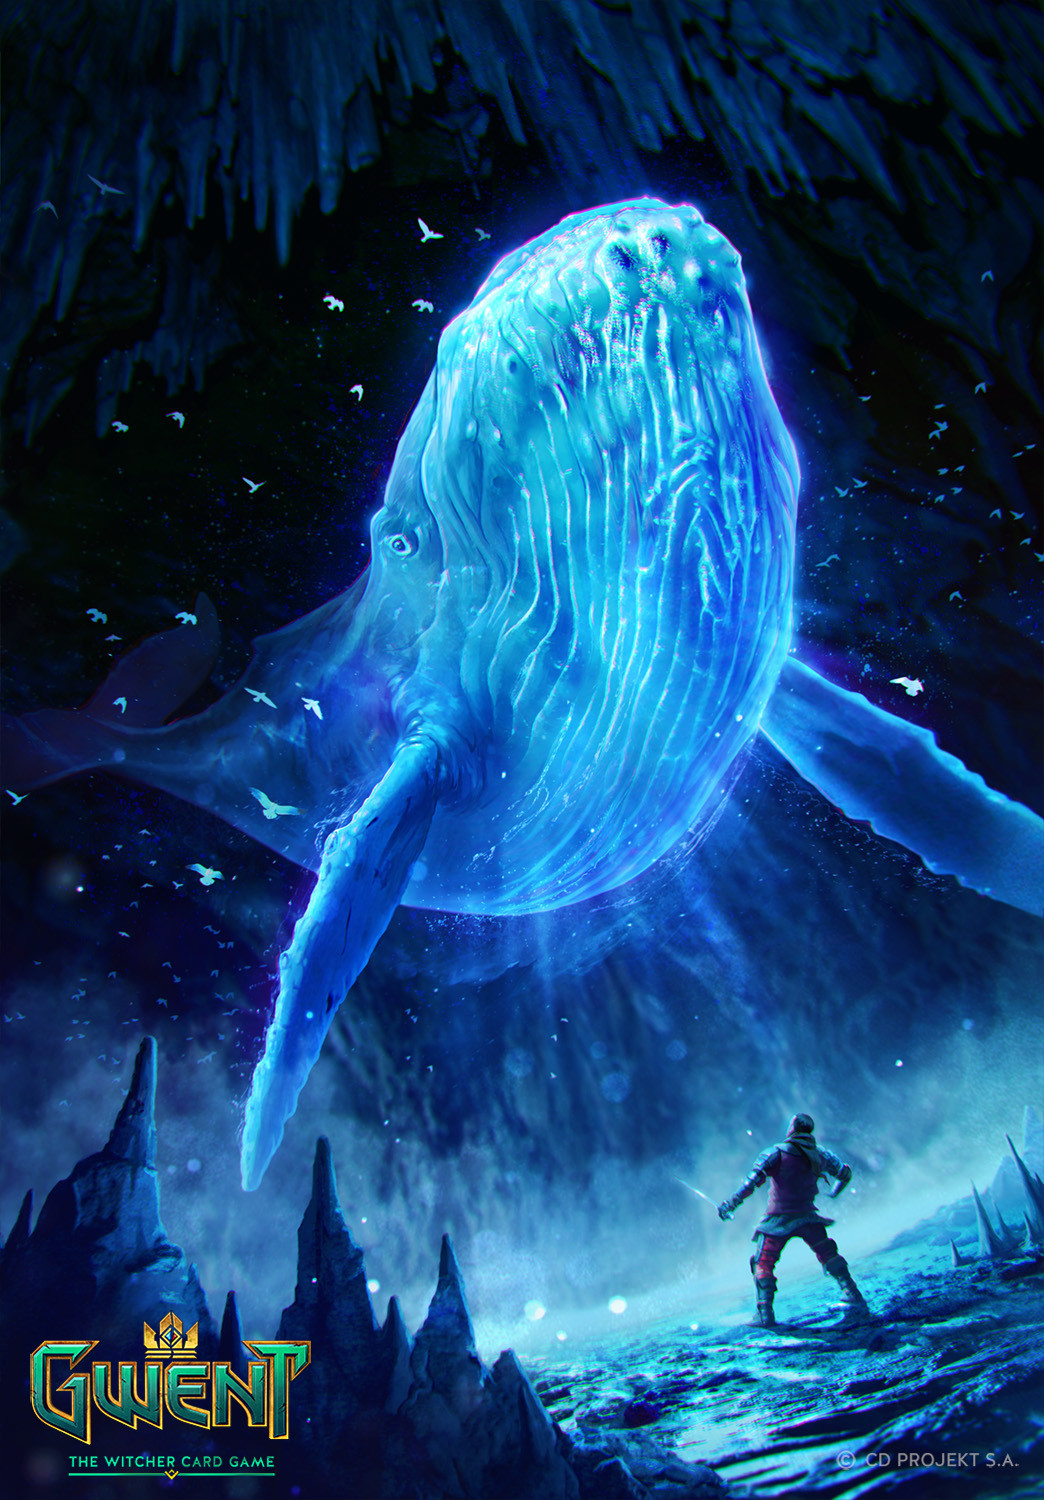 Kate Redesiuk Spectral Whale Gwent Card